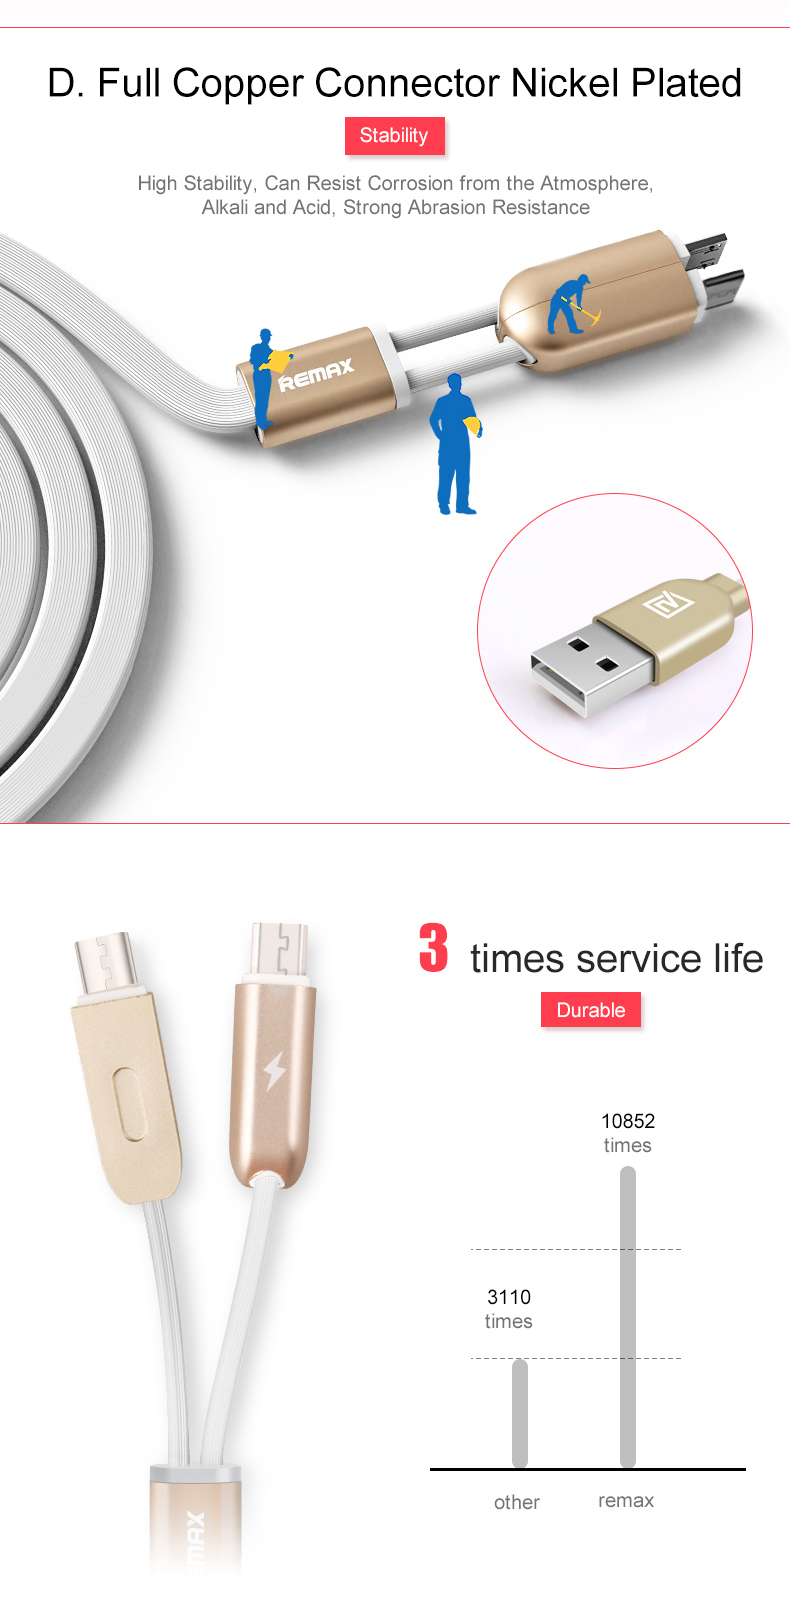 REMAX-Gemini-2in1-USB-Cable-for-iPhone-X-7-8-Plus-Micro-USB-Magnetic-sync-Fast-Charging-USB-Charger-Cable-for-SamsungxiaomiHTC-32948287341